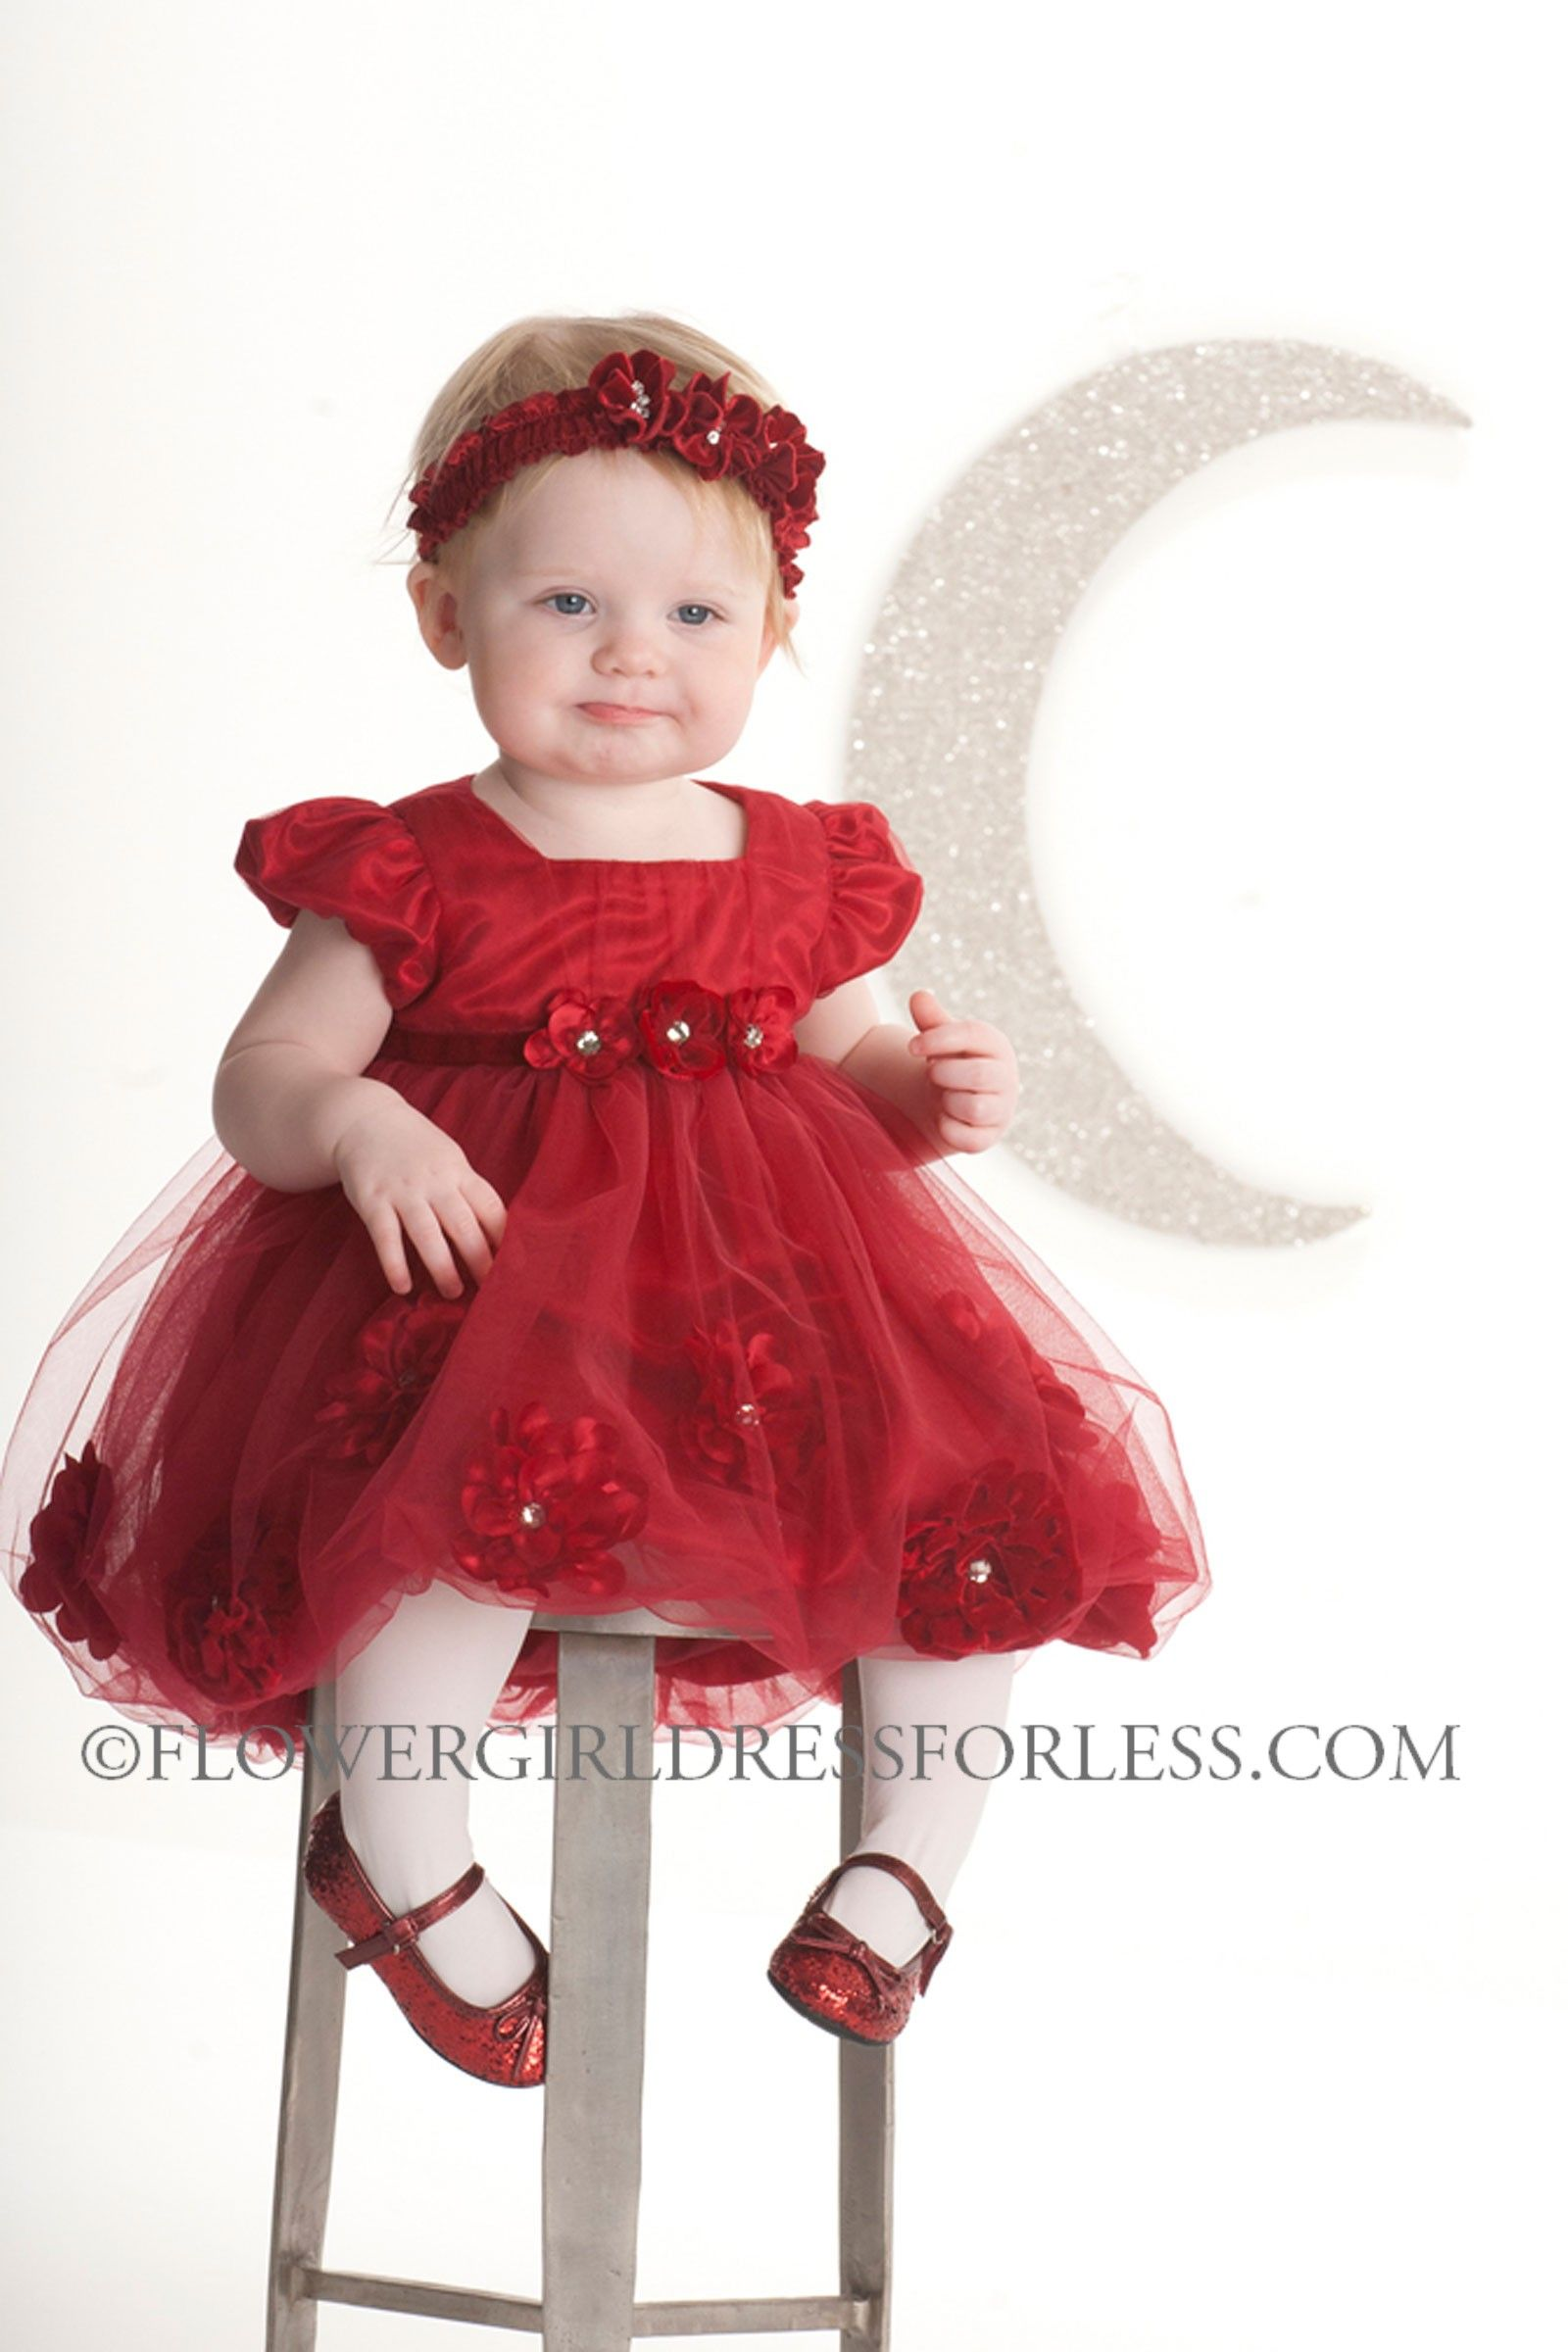 Biscotti Designer Girls Dress Style 197 Red Cap Sleeve Tulle and